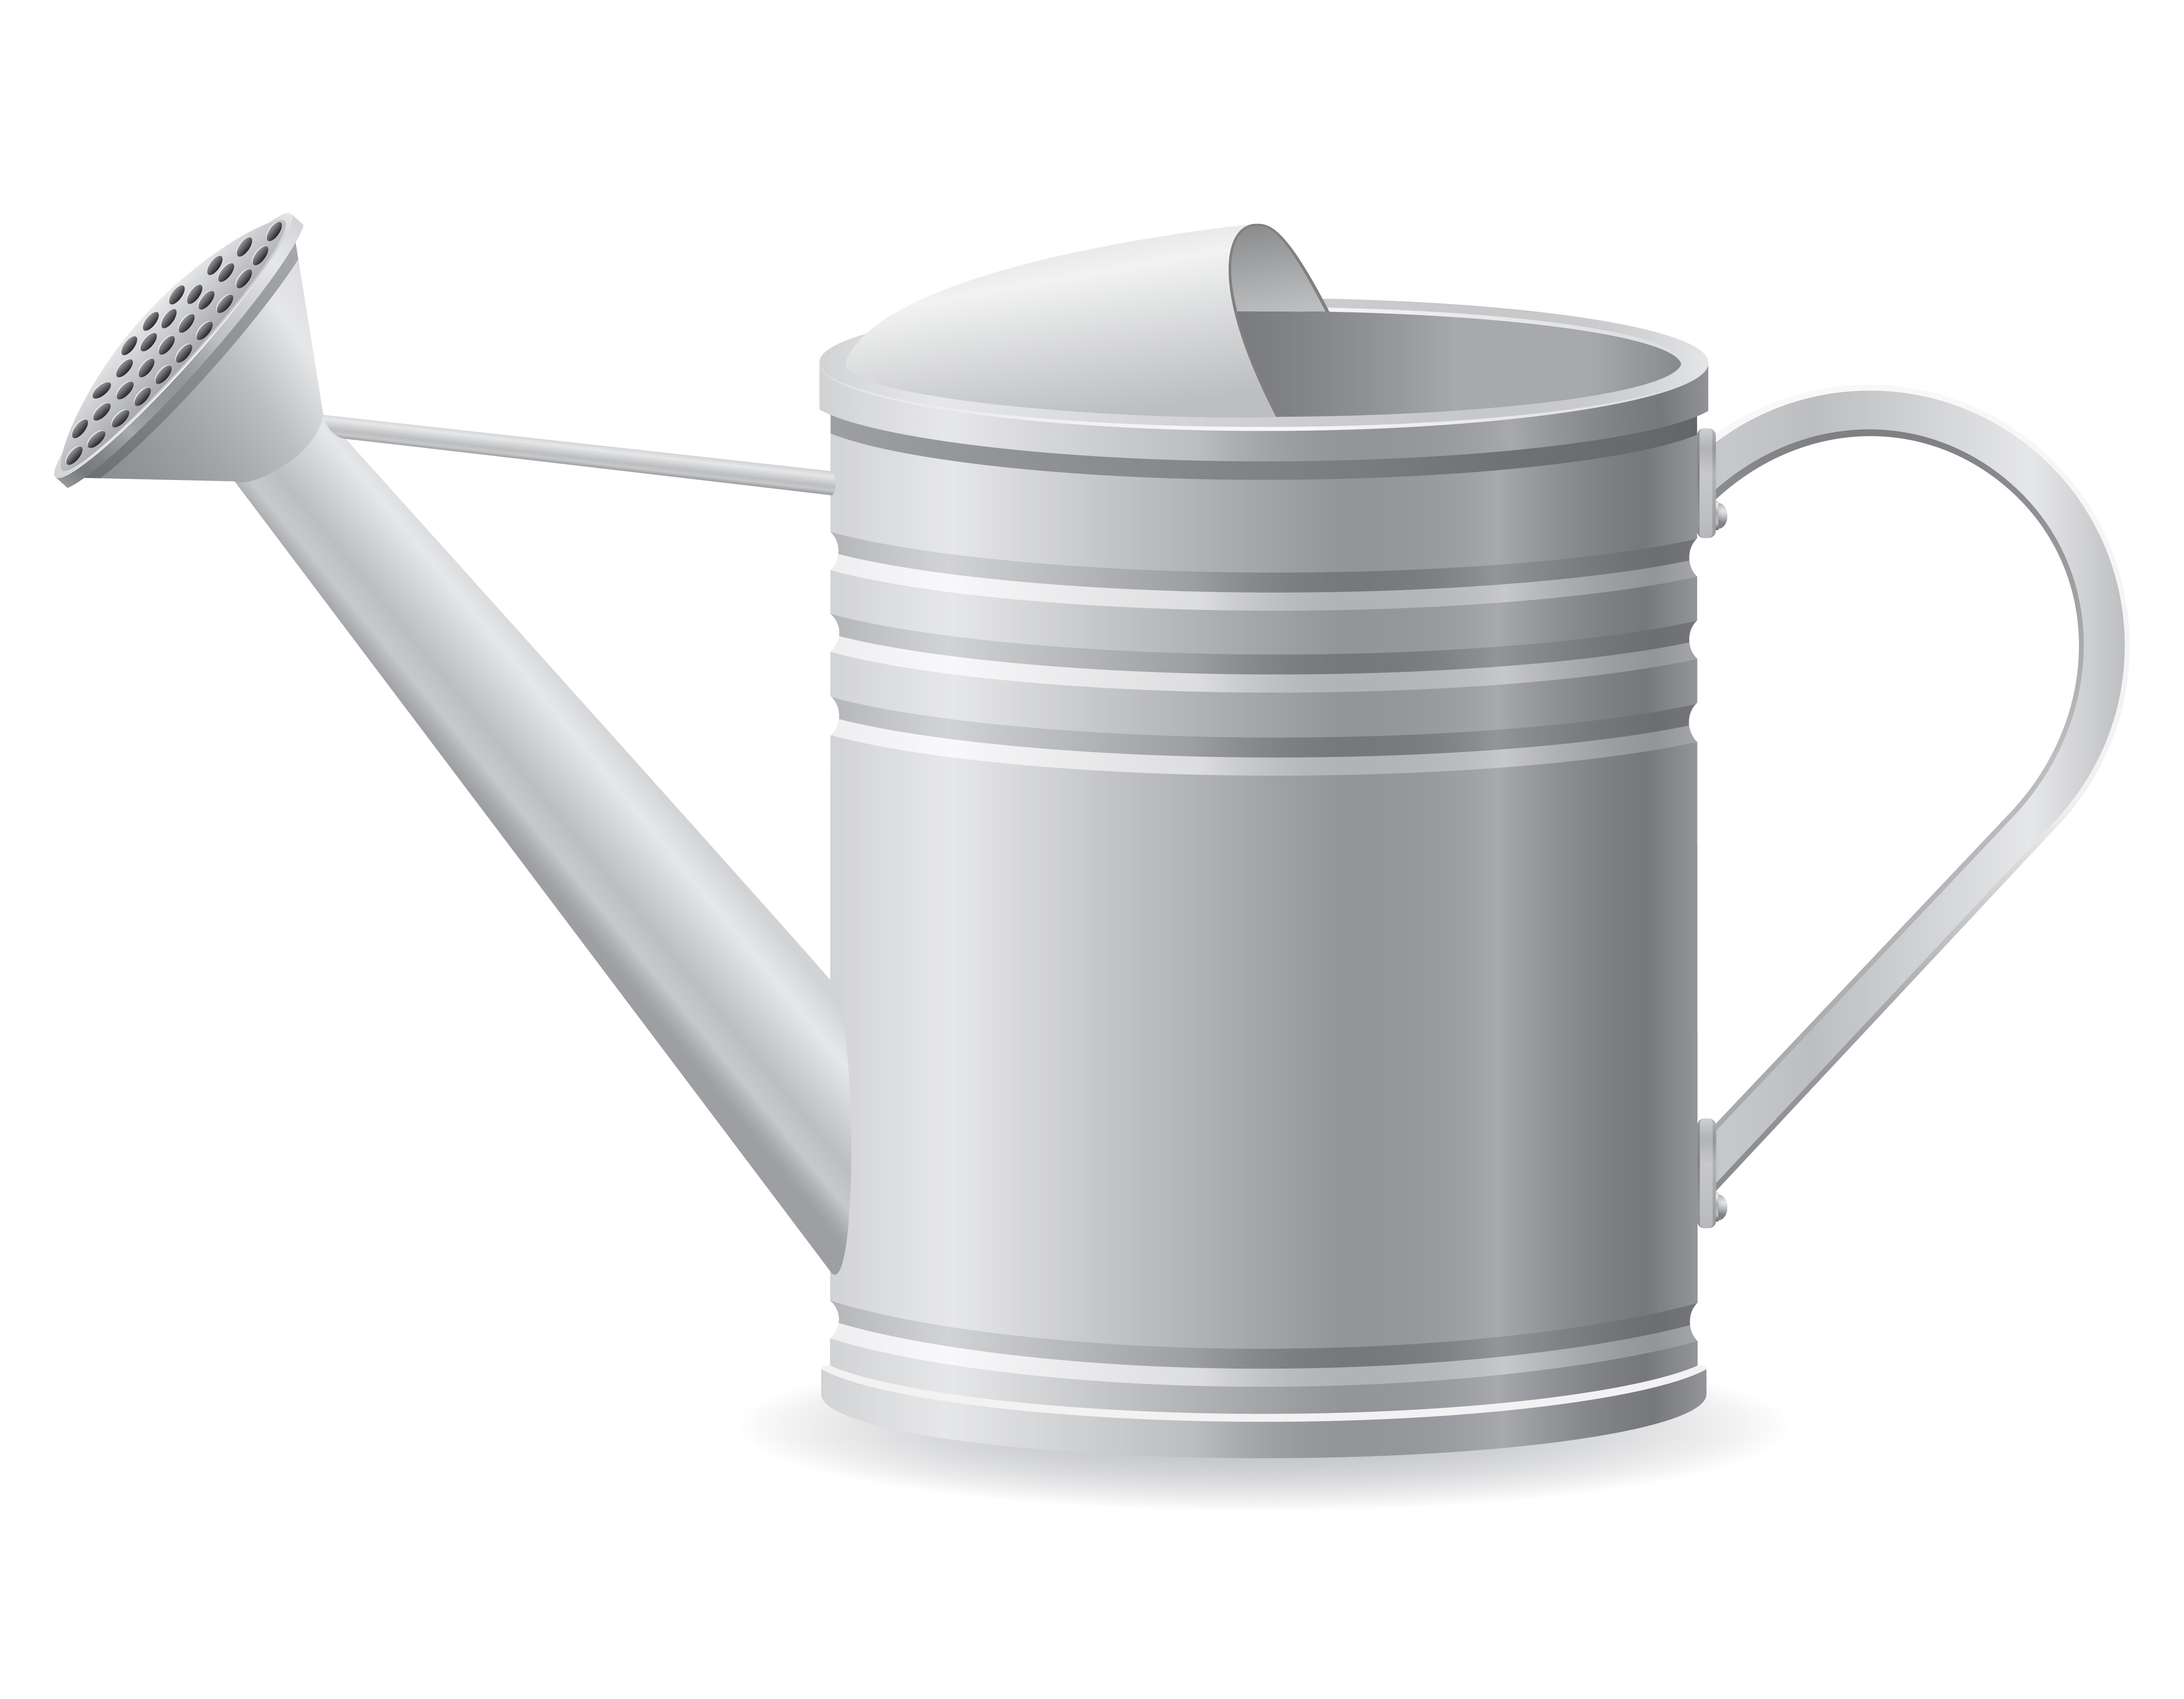 metal watering can vector illustration - Download Free ...